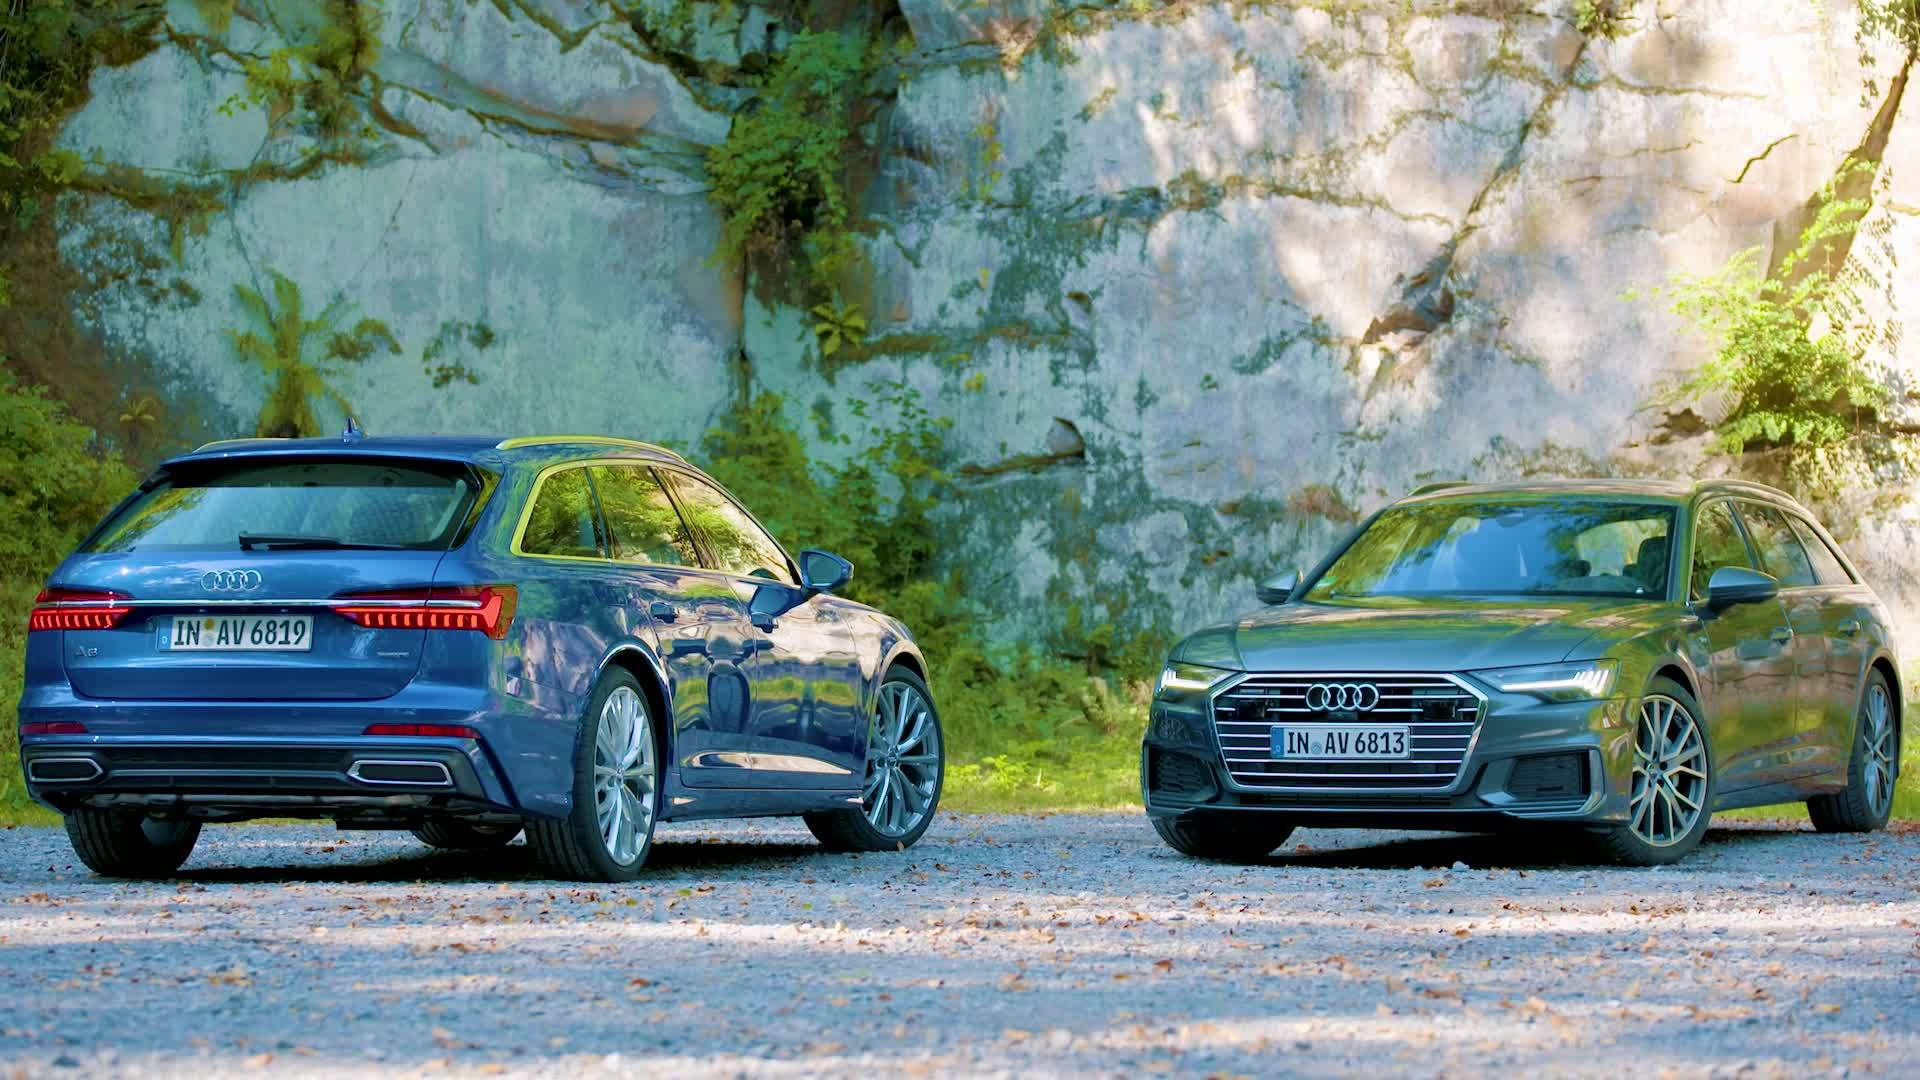 Practical. Beautiful. Sporty. The new Audi A6 Avant